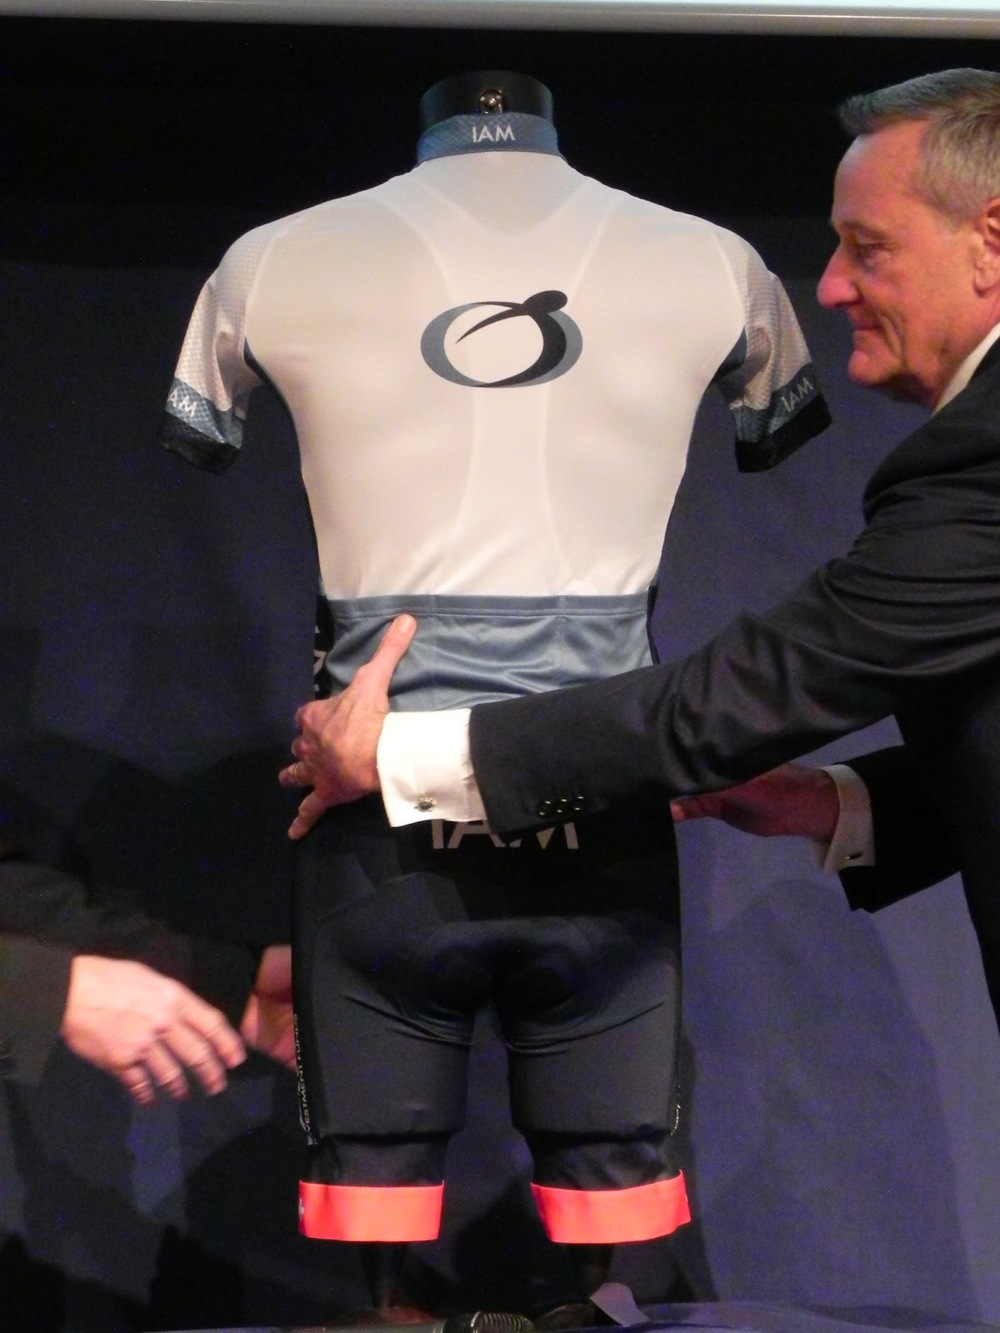 Rear view of the jersey (photo by Guillaume Boillot)